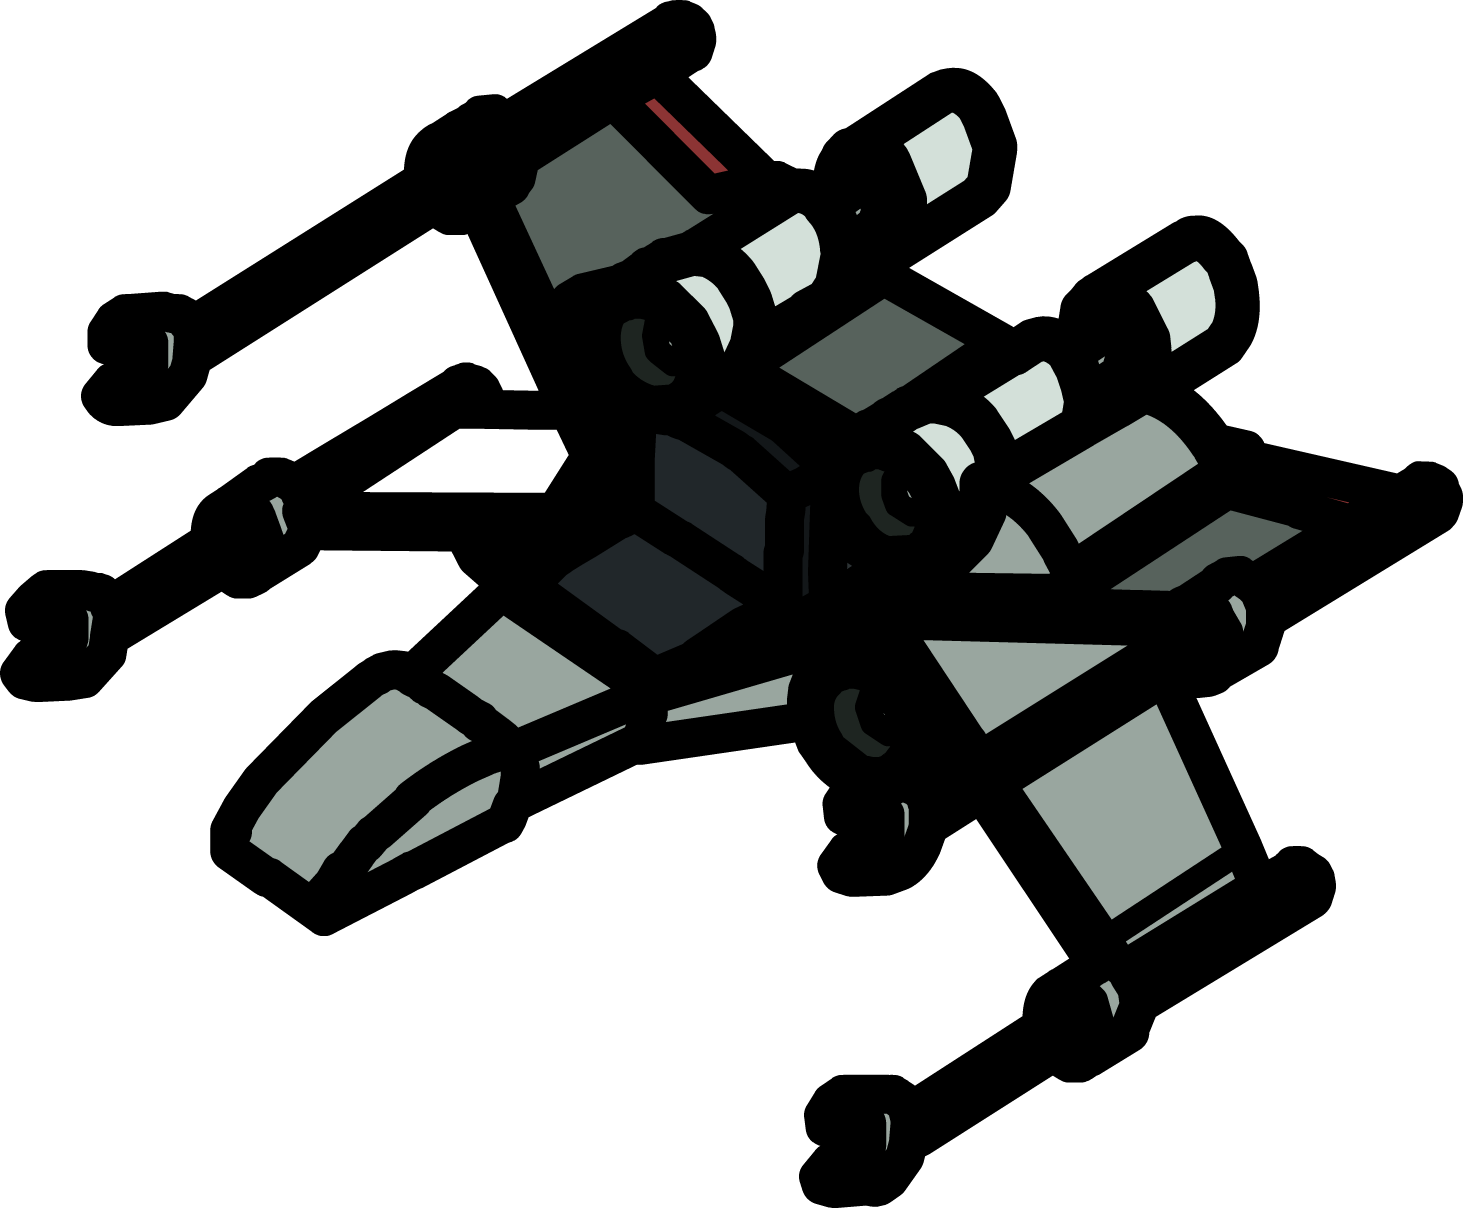 Star wars tie fighter clipart picture transparent library X-wing Fighter Chair | Club Penguin Wiki | FANDOM powered by Wikia picture transparent library